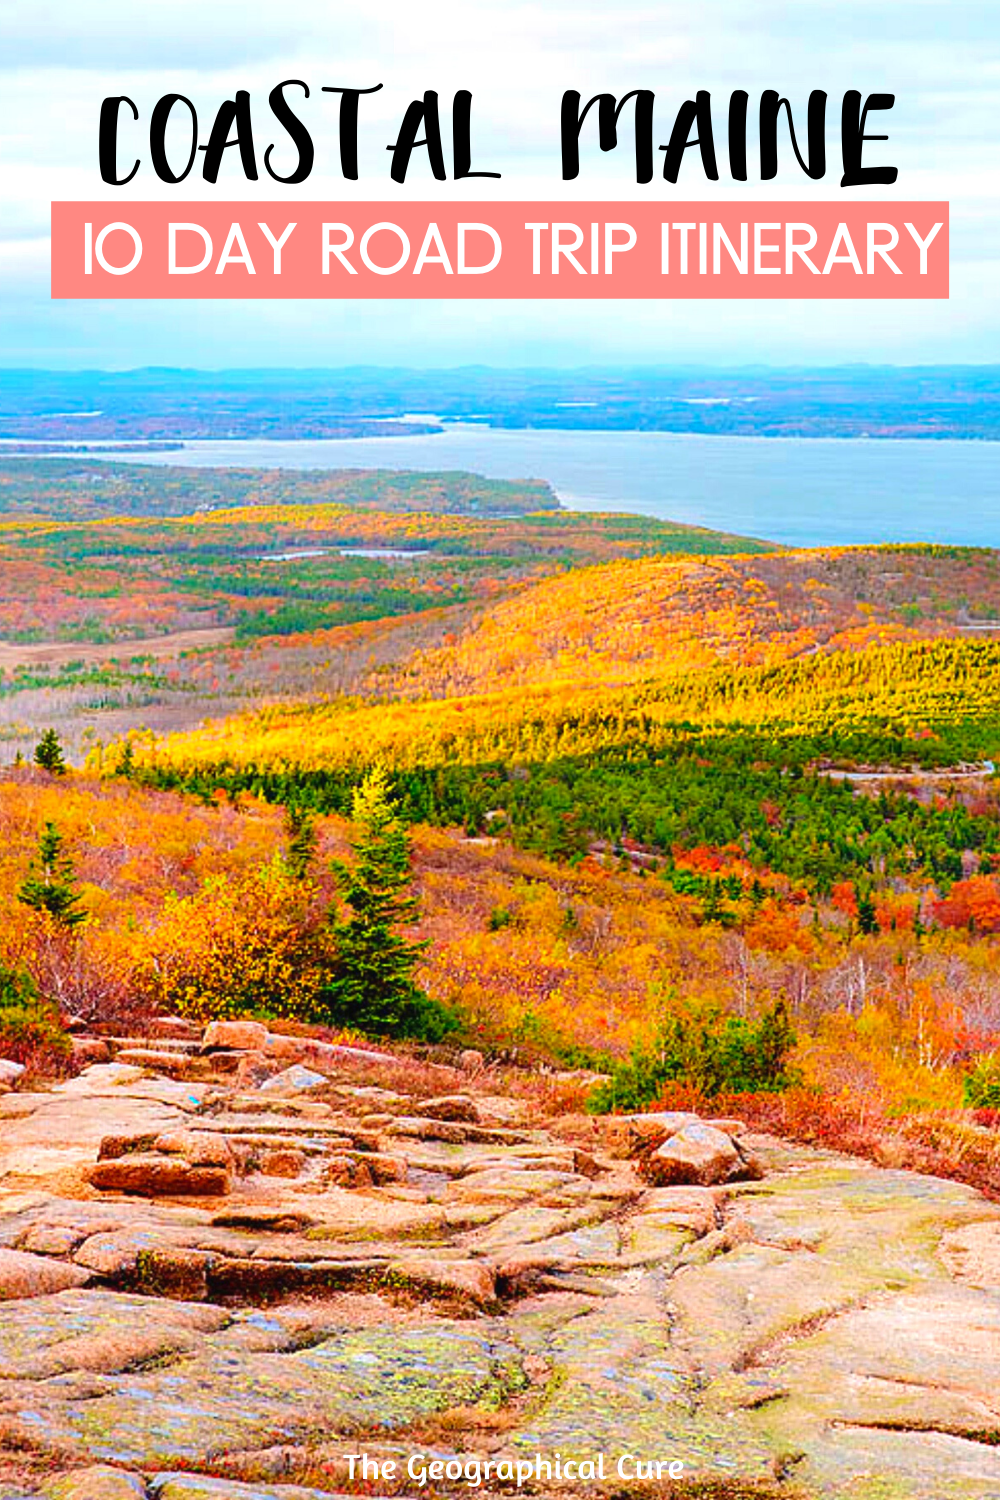 Coastal Maine: the Perfect 10 day Road Trip Itinerary and Travel Guide